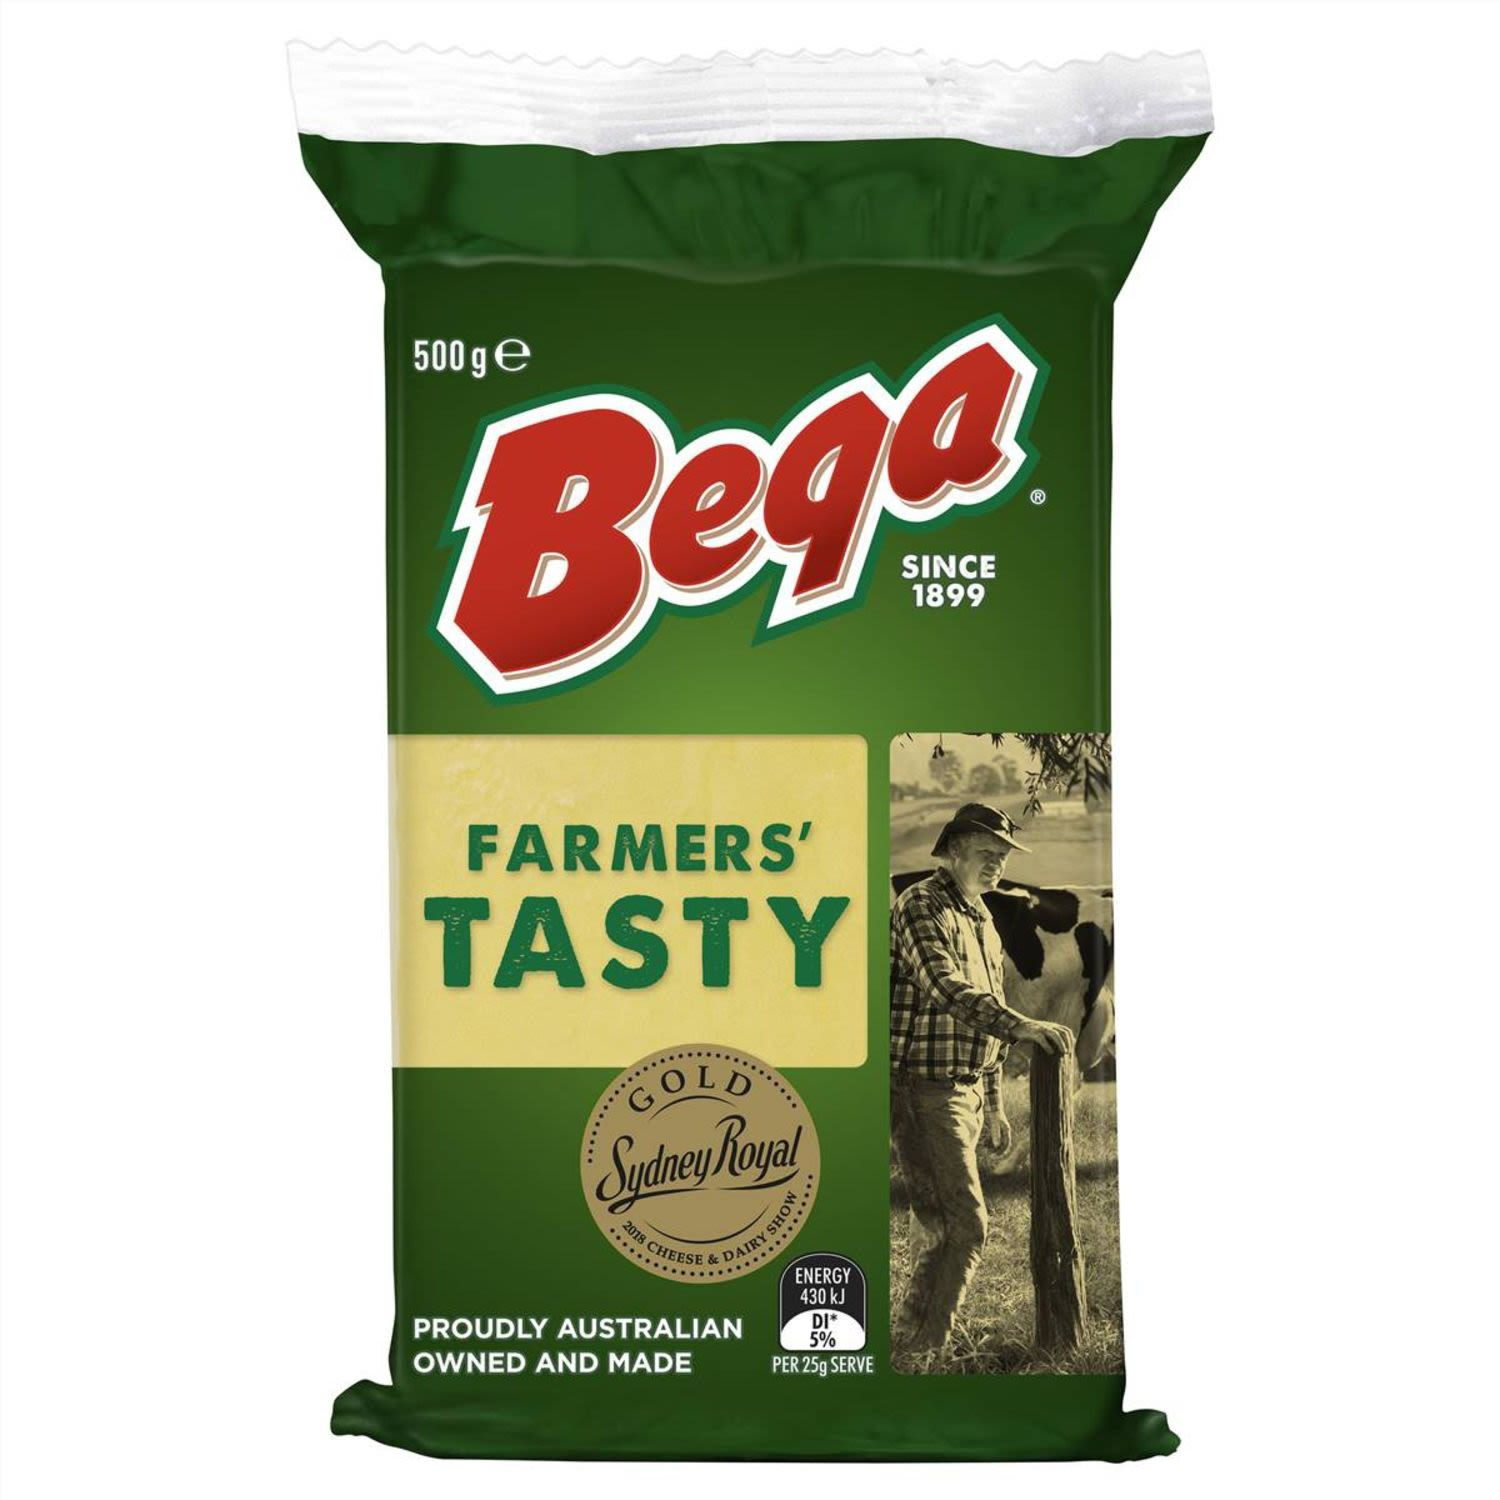 Proudly Australian owned and made. 100% Natural source of calcium. What makes bega.. bega? Over 100 years of dairying heritage resulting in the unique bega taste you know and love.